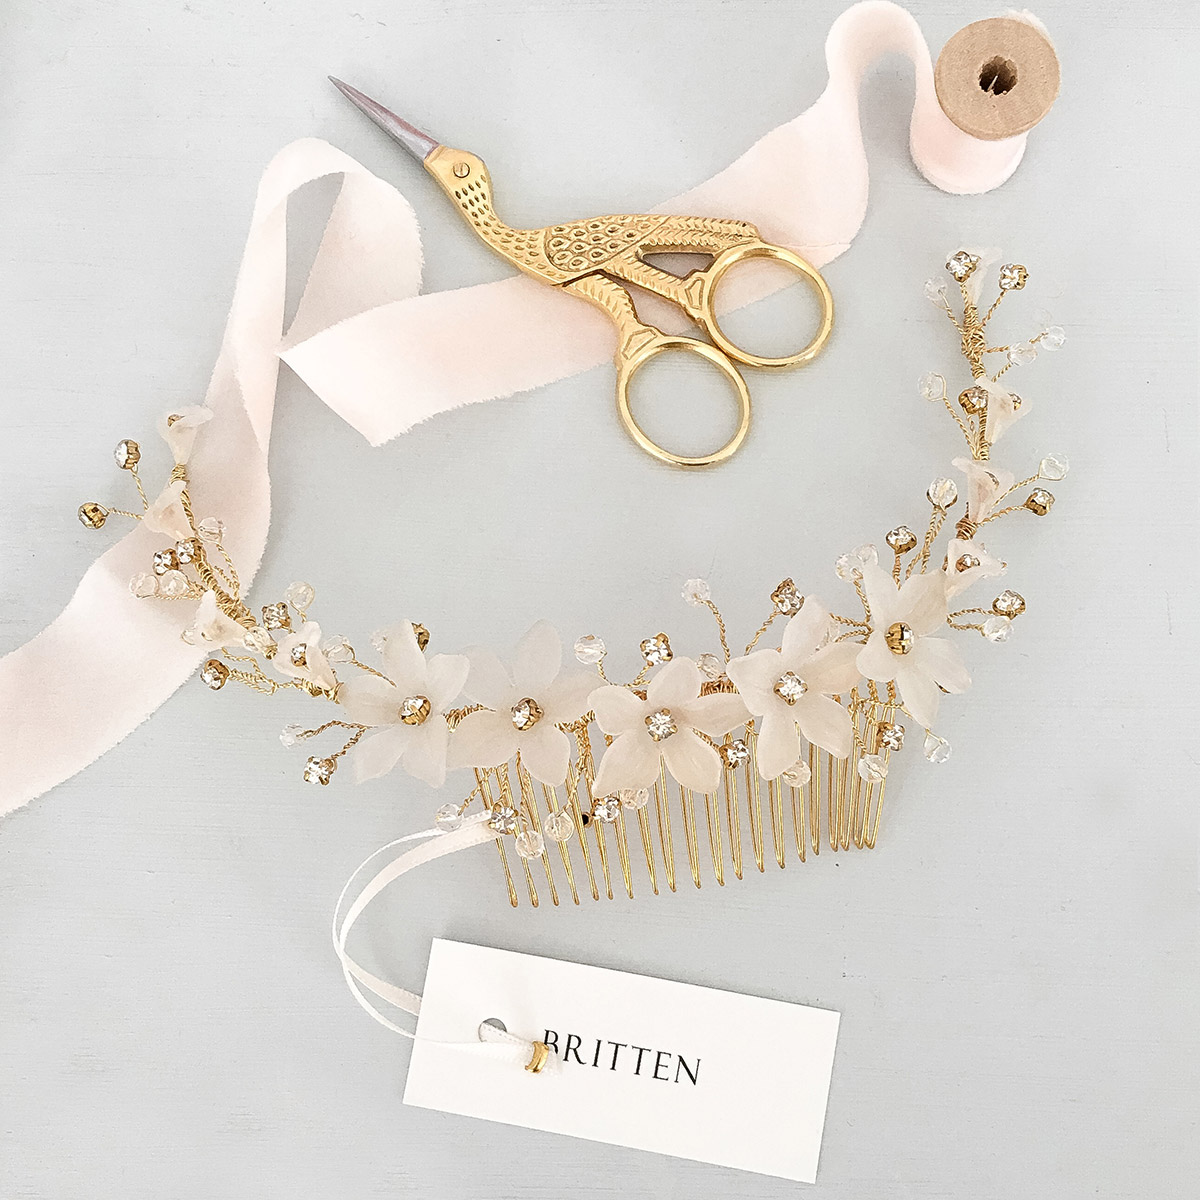 Finely Crafted Luxury Bridal Accessories From Britten + An Exclusive Boutique Discount Offer